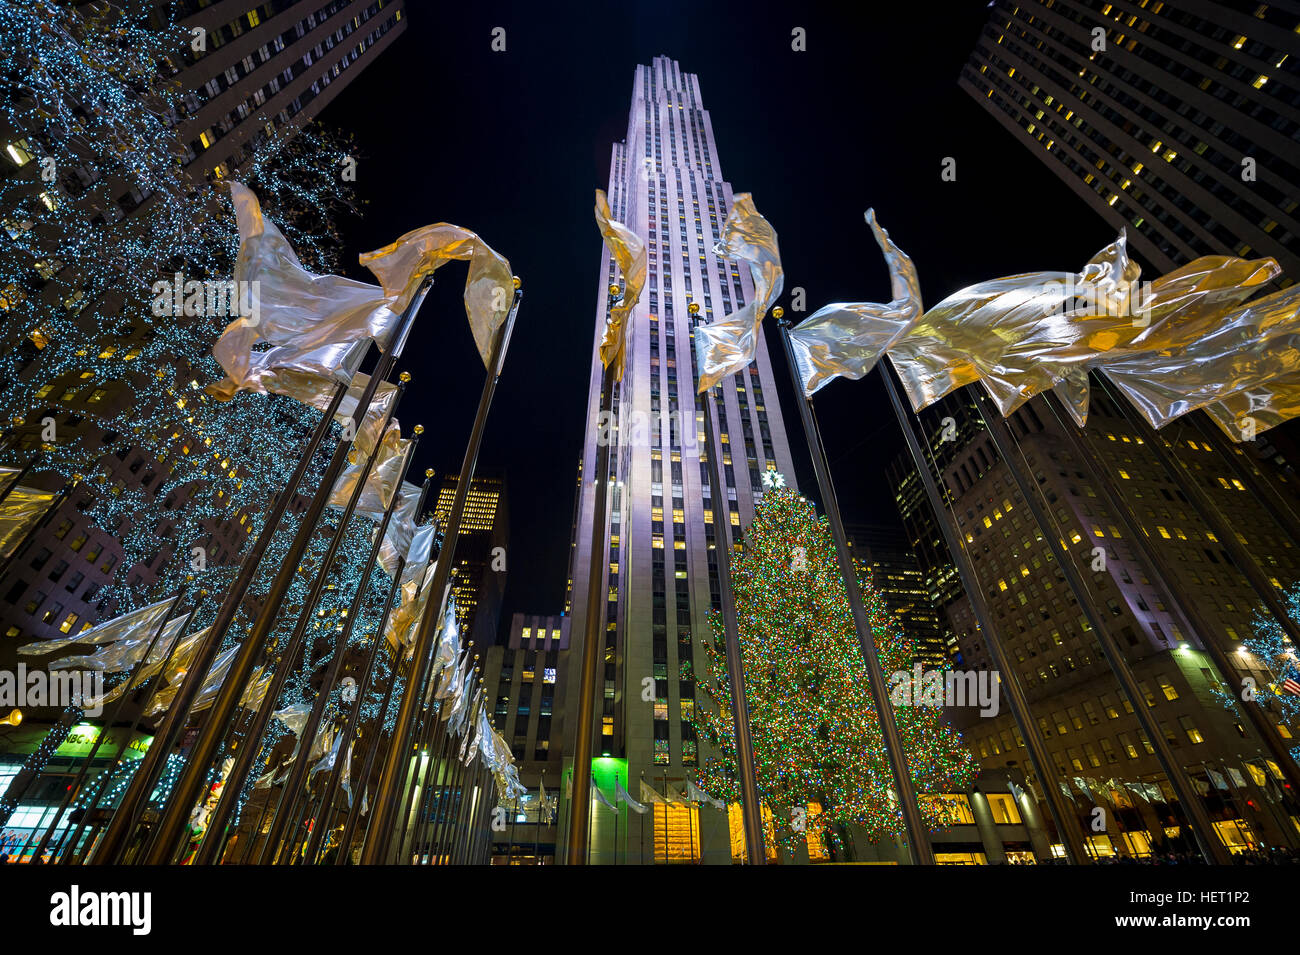 NEW YORK CITY - DECEMBER 23, 2016: Christmas lights decorate the city for the holiday season. - Stock Image